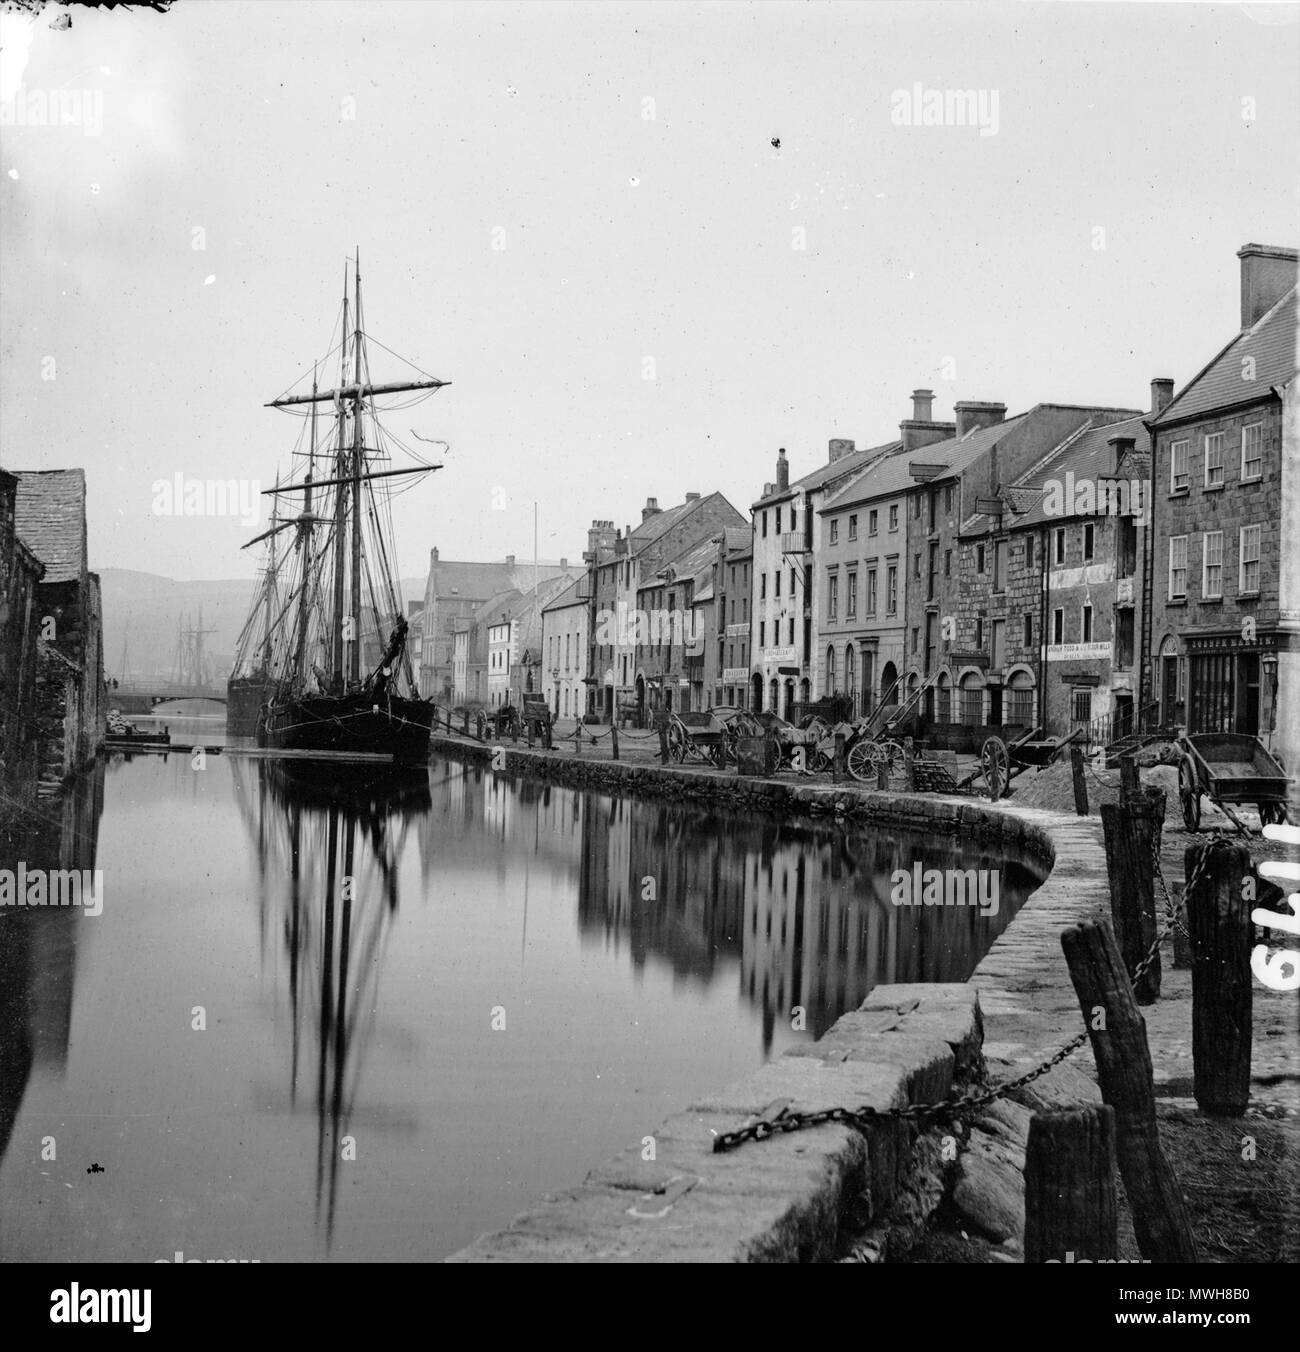 . English: Ships on the canal at Merchants Quay in Newry, alongside a nice brace of merchants' premises. Date: 1870s? (but definitely between 1860 and 1883) . 1870. Anonymous 412 Merchants Quay, Newry - Stock Image